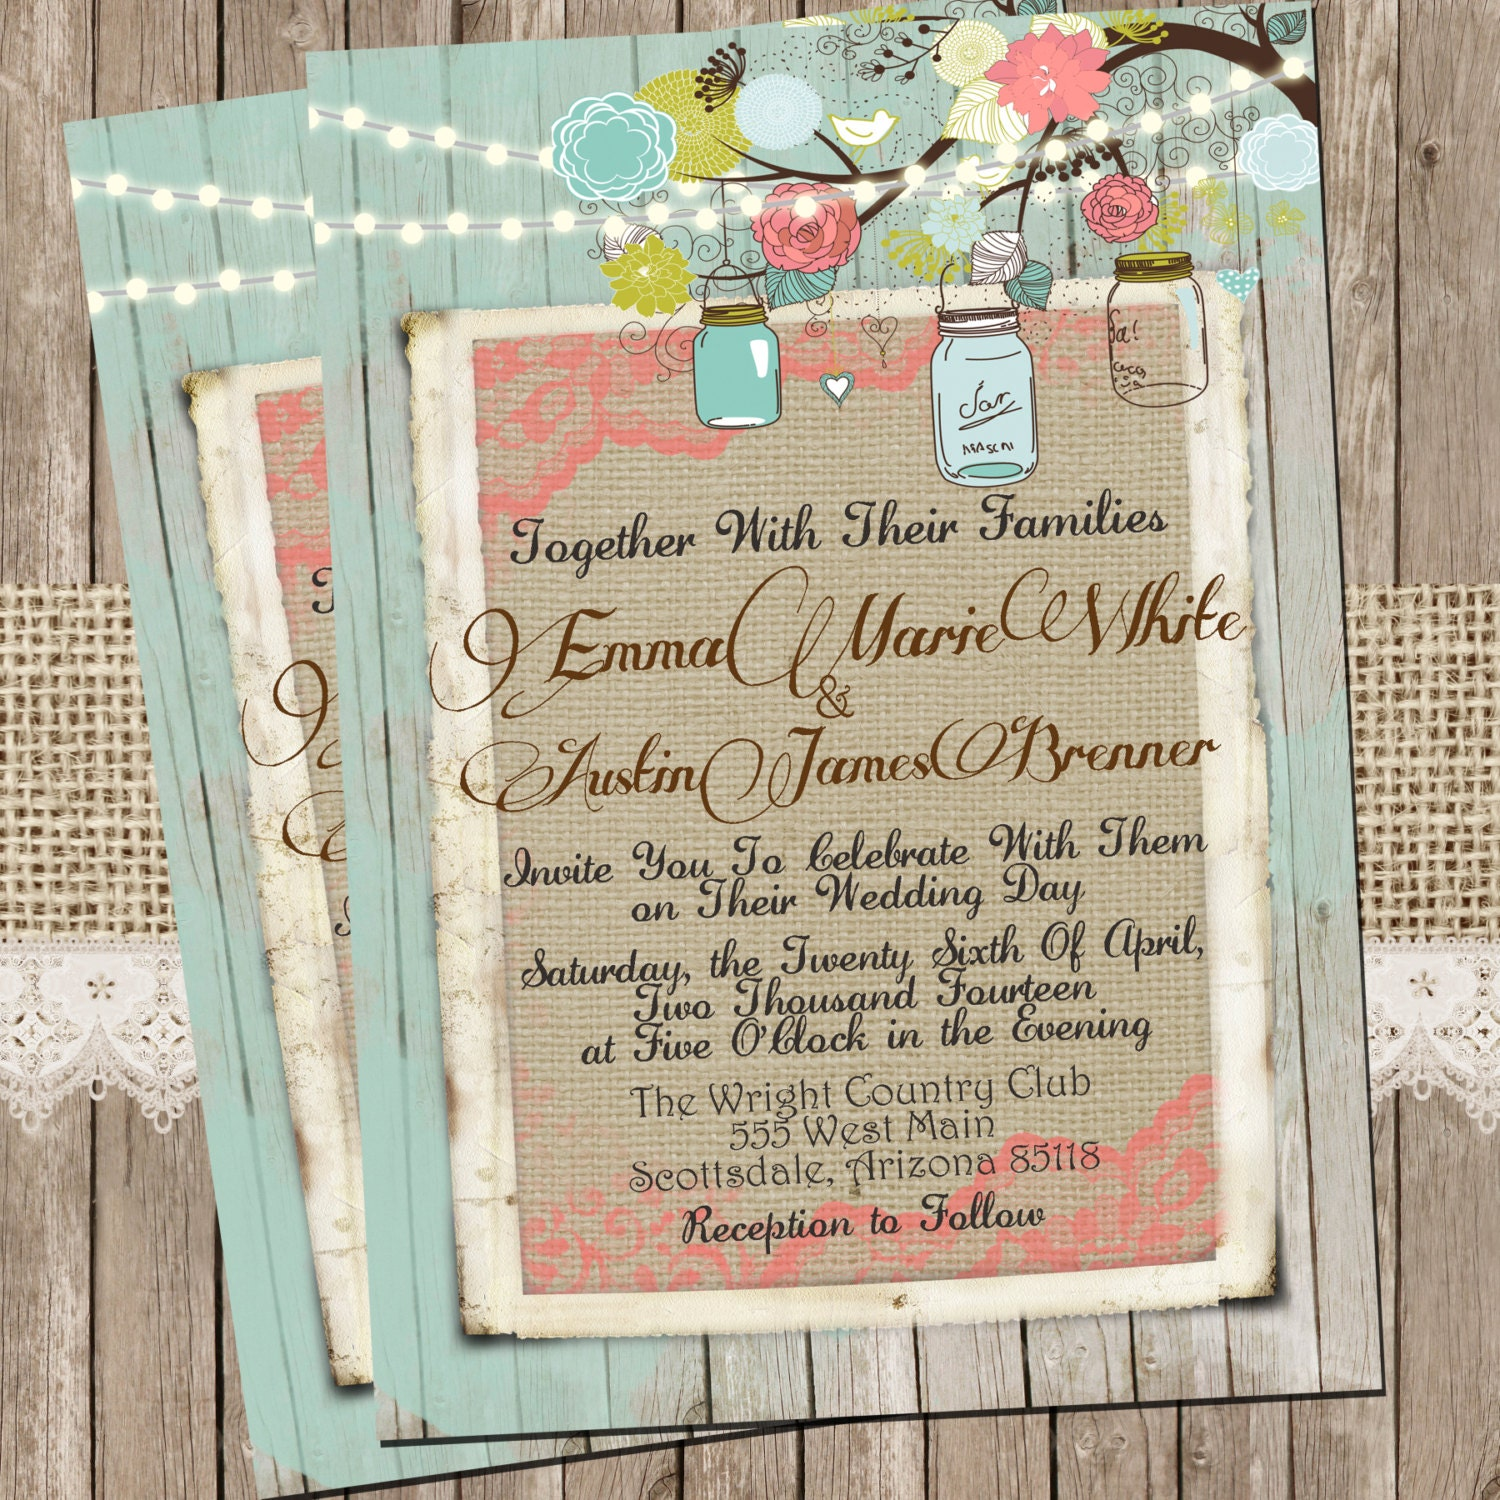 Coral Wedding Invitations: Mint And Coral Burlap And Lace Wedding Invitation Rustic